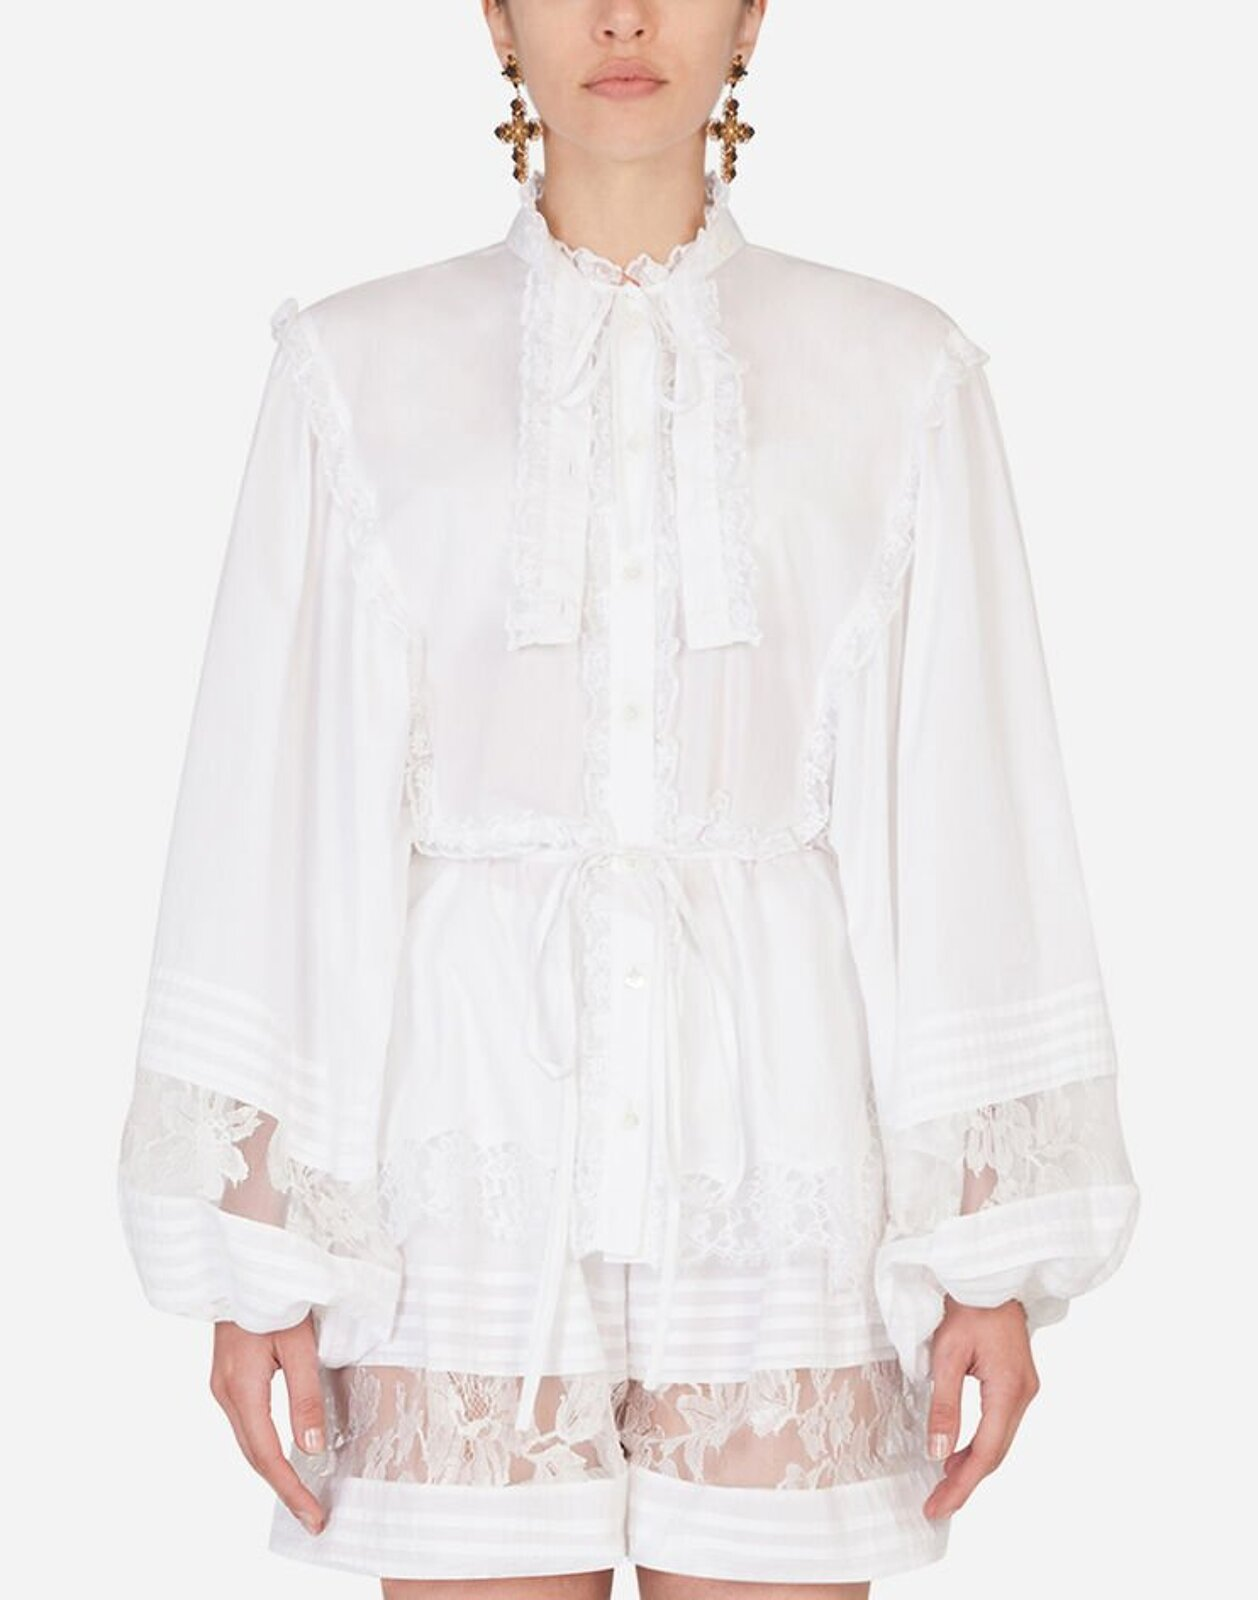 Blouse With Puff Sleeves - Dolce & Gabbana